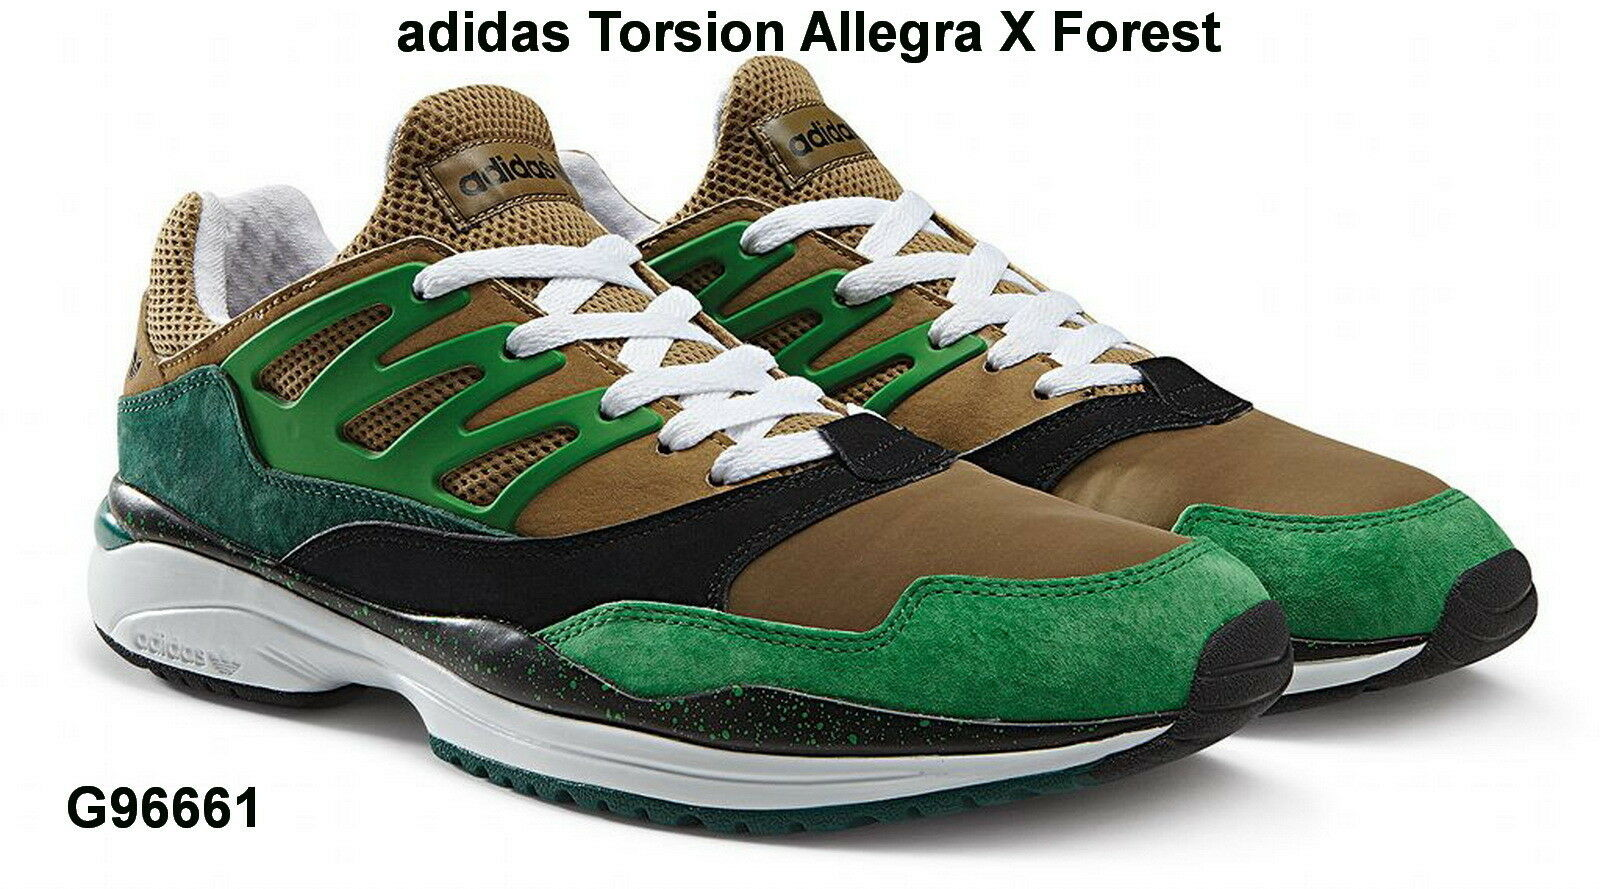 adidas Torsion Allegra X Forest Sneaker Herren Originals G96661